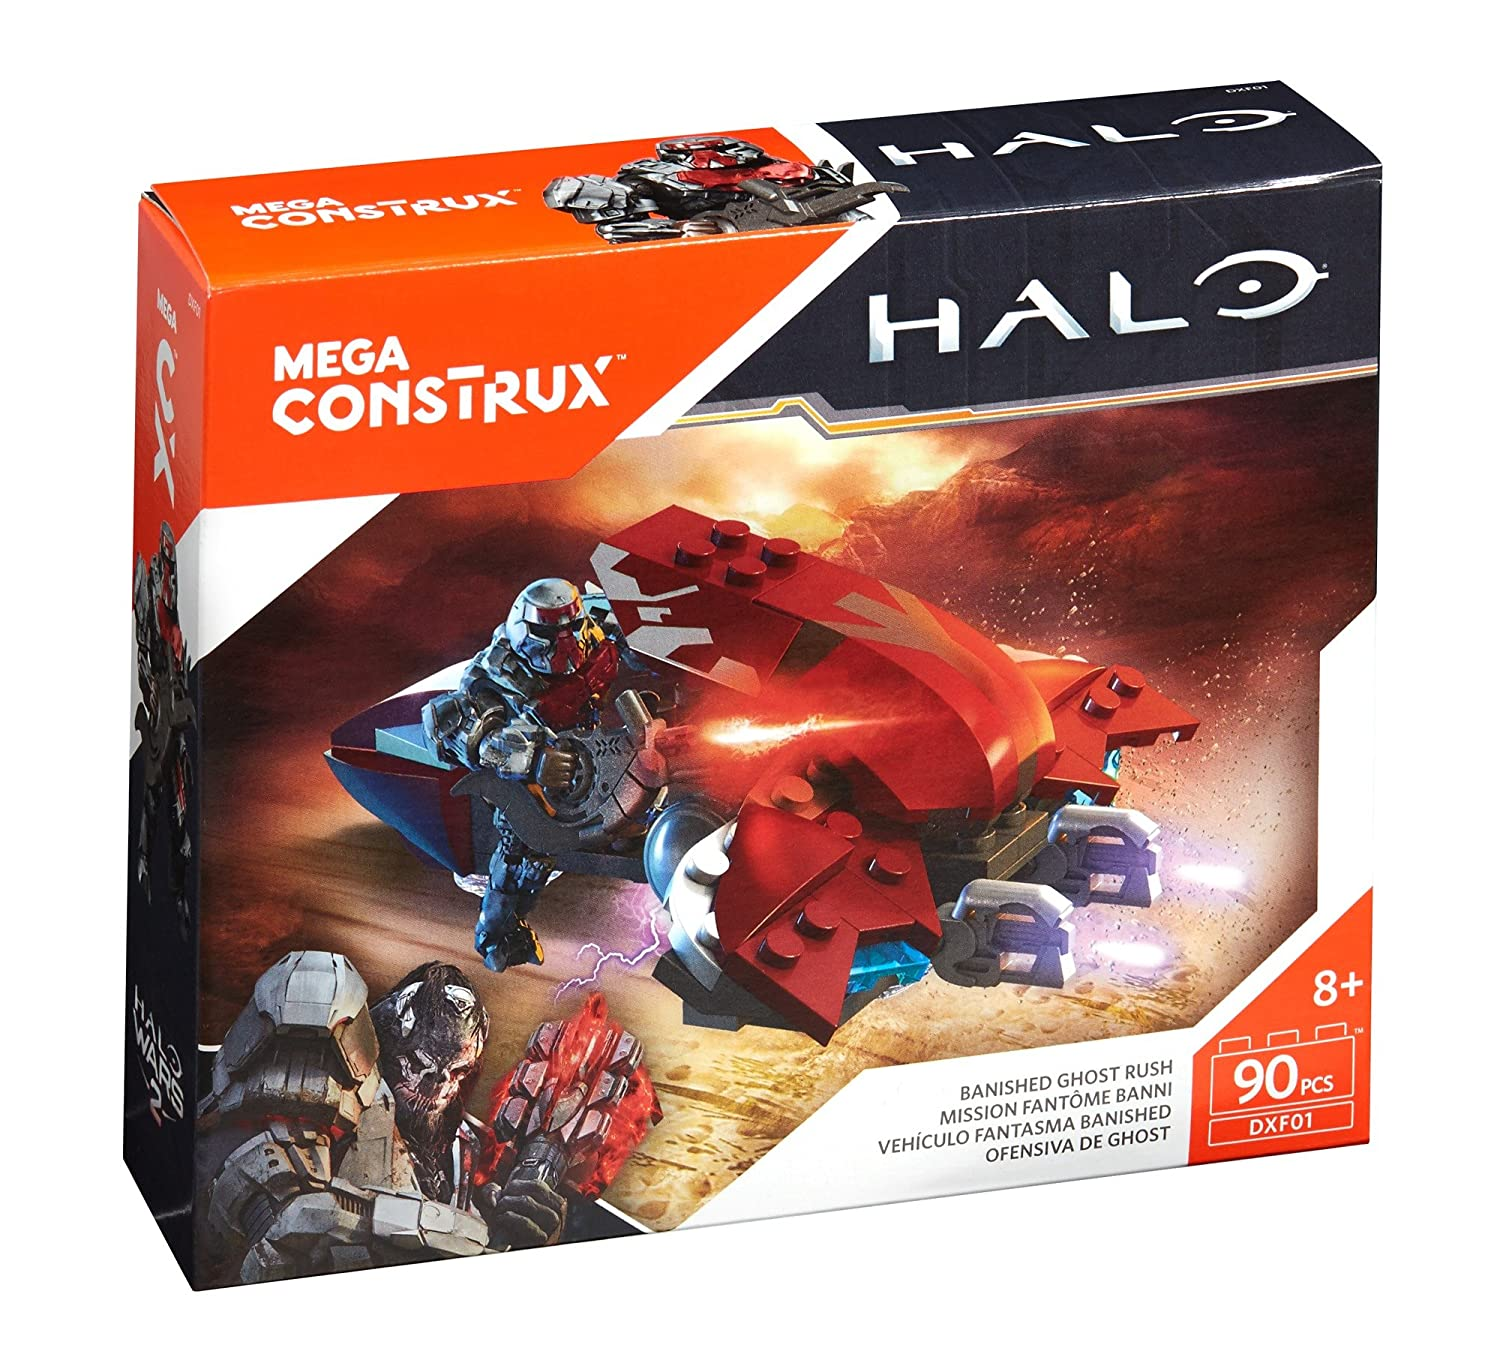 Mega Construx Halo Banished Ghost Rush Building Set Mattel DXF01 Accessory Consumer Accessories